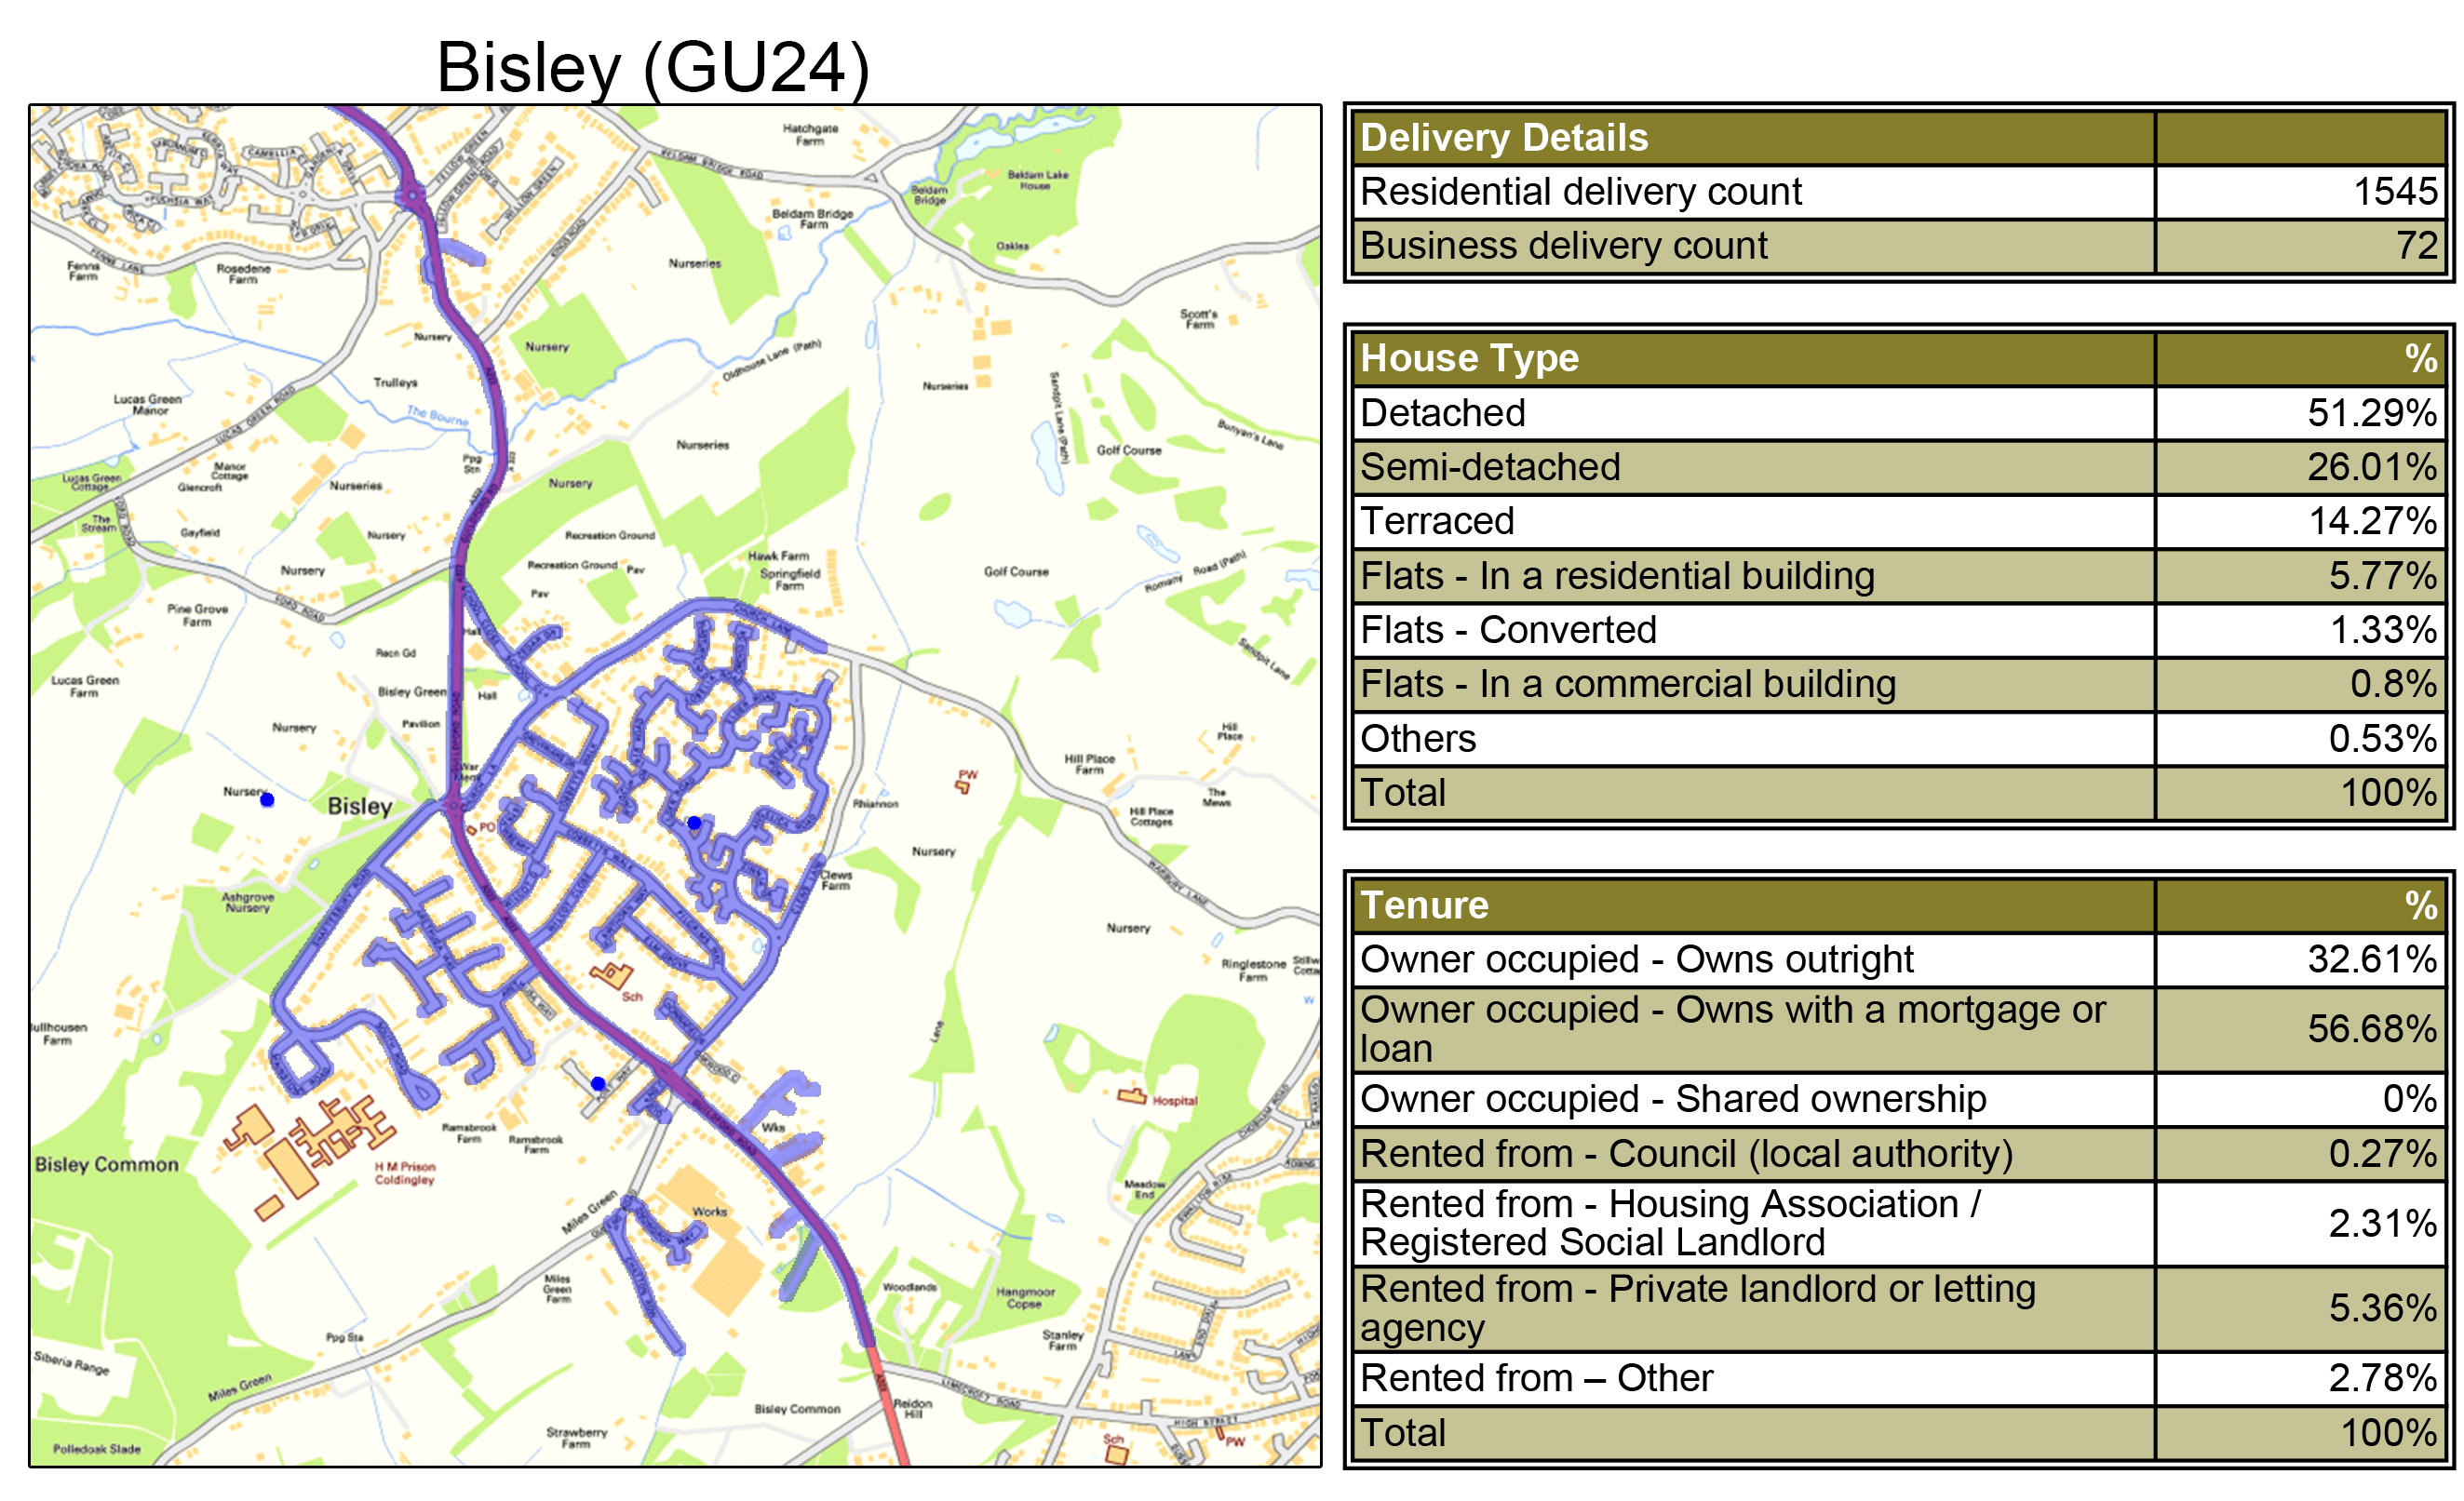 Geoplan Image of Leaflet Distribution Bisley